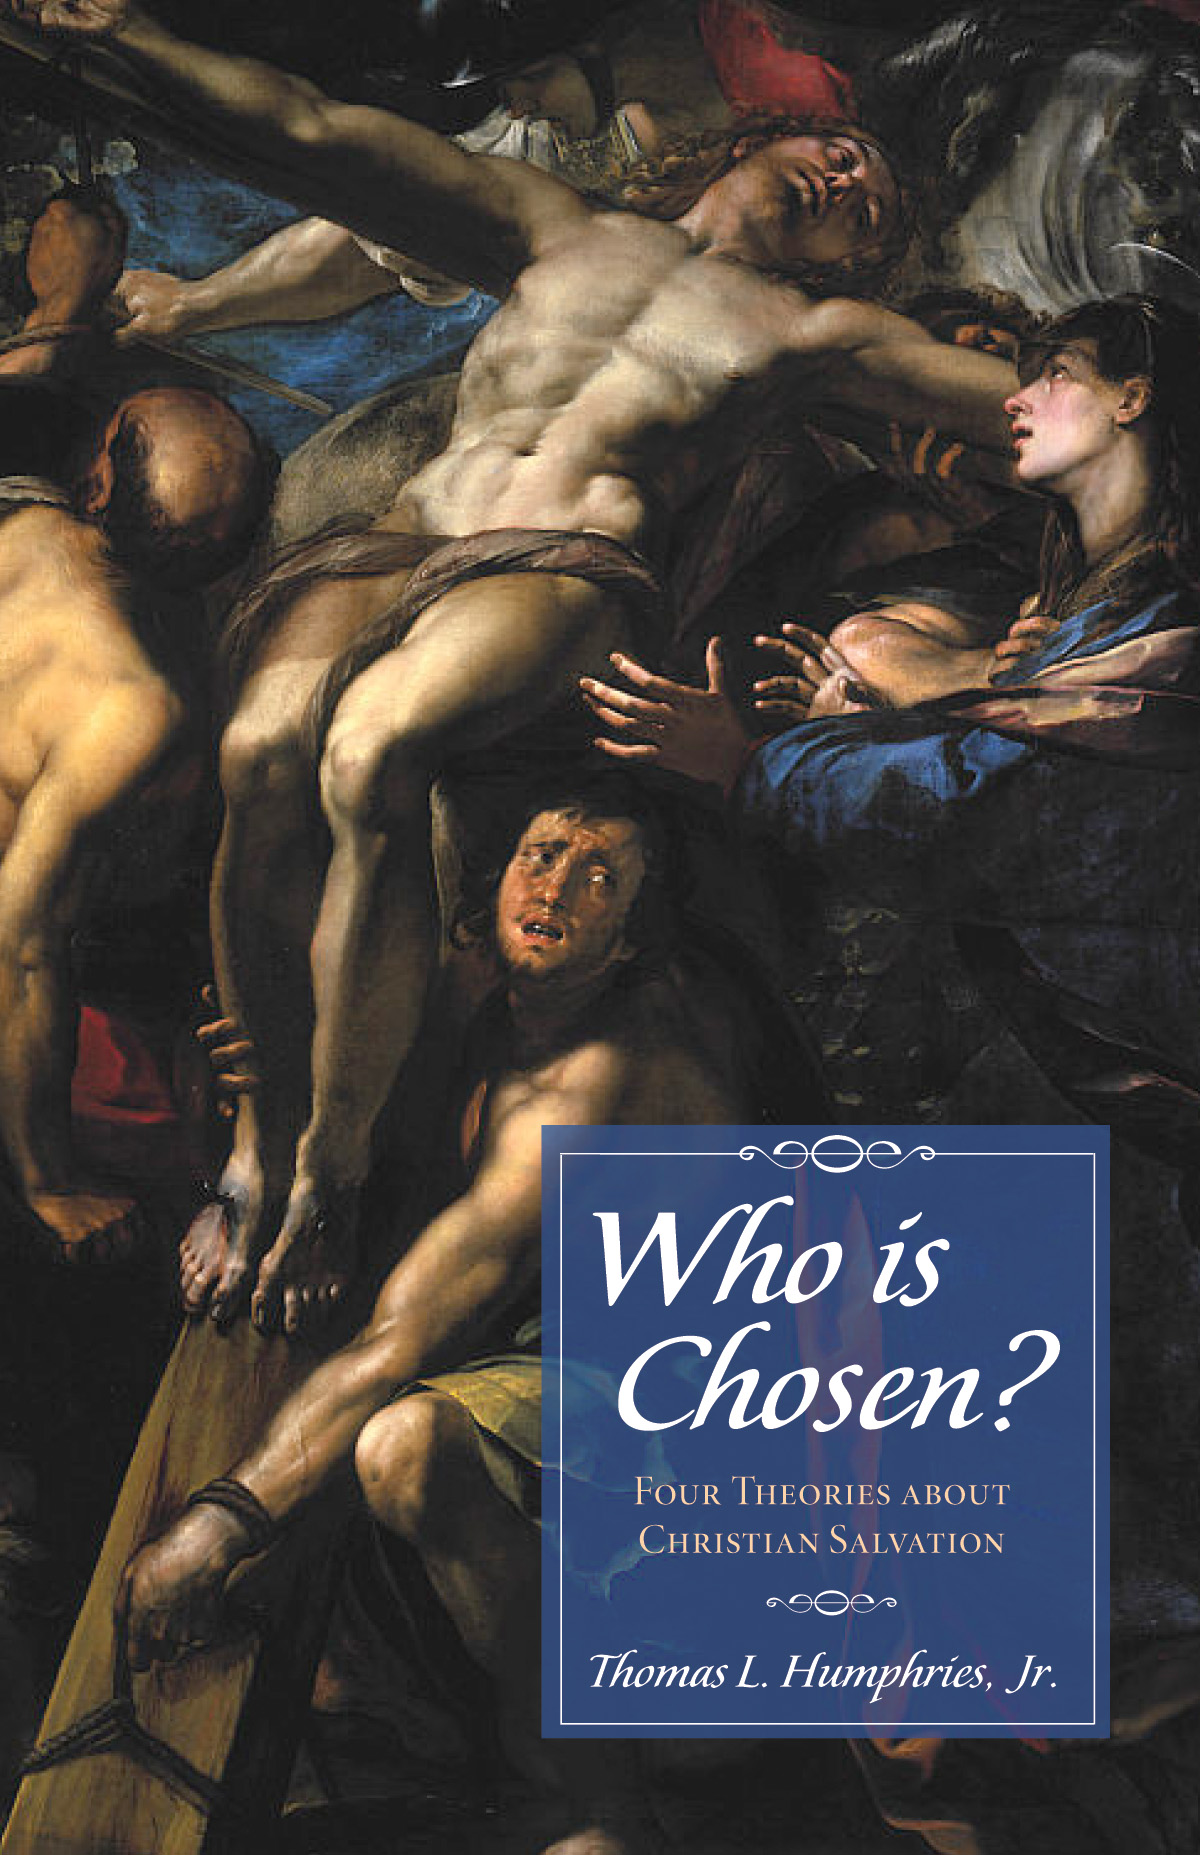 Who Is Chosen?  Thomas Humphries' New Textbook Explores Four Theological Views On Salvation